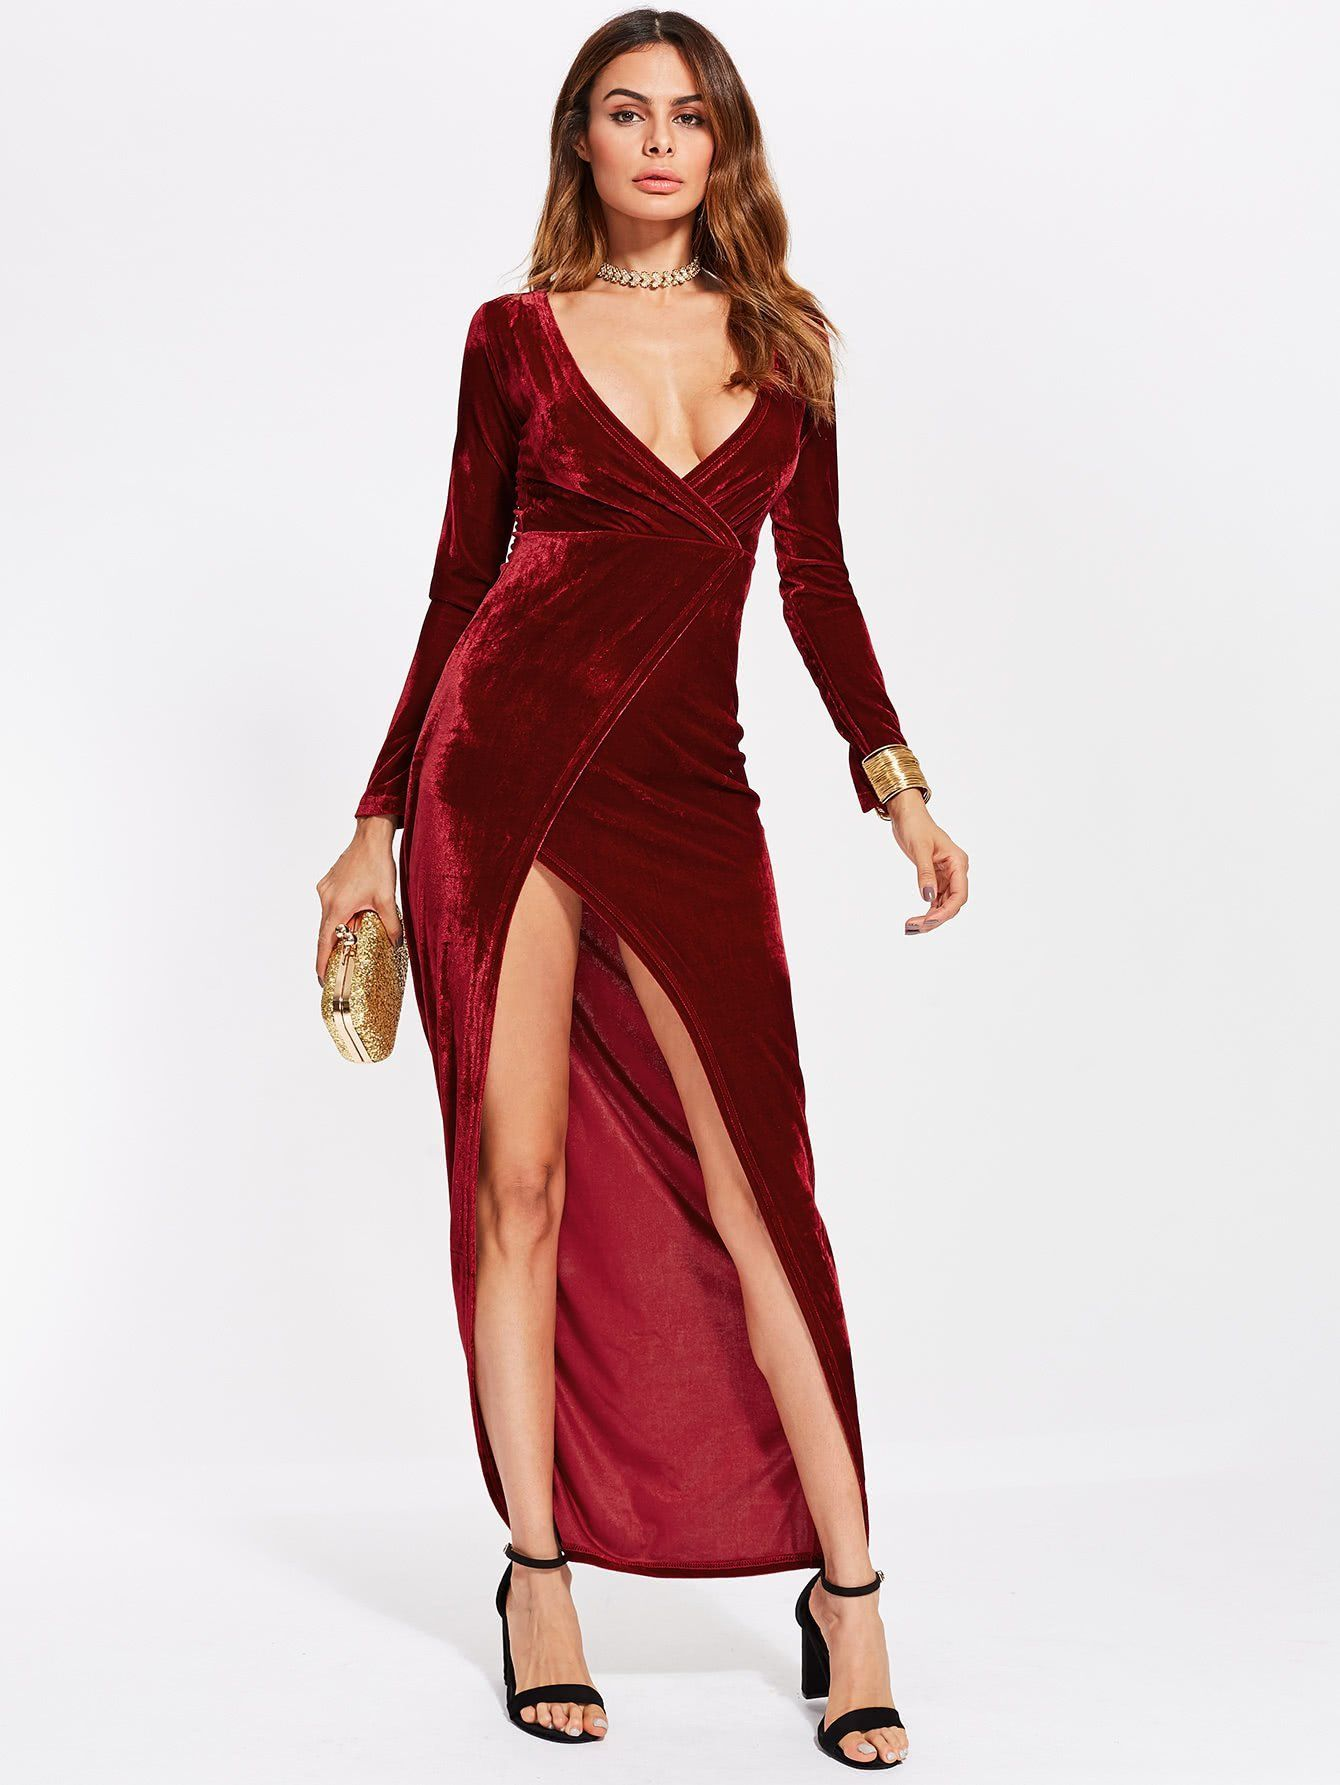 0aa6f169cc Material: Velvet Color: Burgundy Pattern Type: Plain Neckline: Deep V Neck  Style: Sexy, Elegant, Party Type: Wrap Silhouette: Sheath Sleeve Length:  Long ...